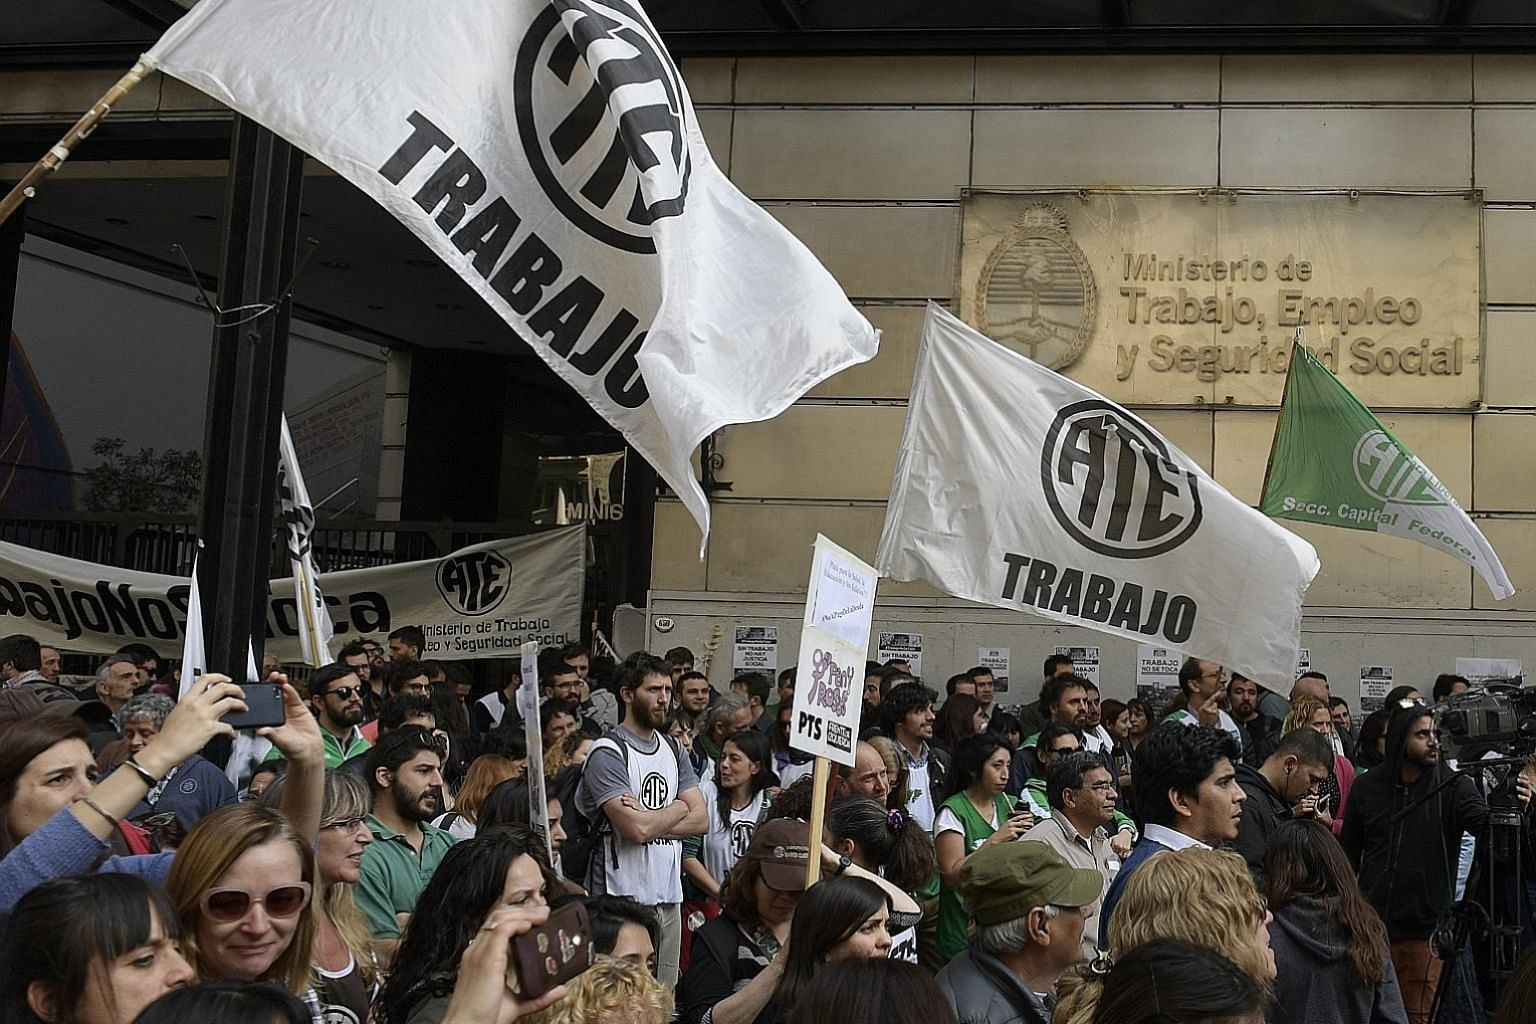 Public-sector employees in Argentina protesting last Friday in Buenos Aires against the government of President Mauricio Macri over sweeping new austerity measures. The economy is forecast to shrink by at least 1 per cent this year, and inflation has